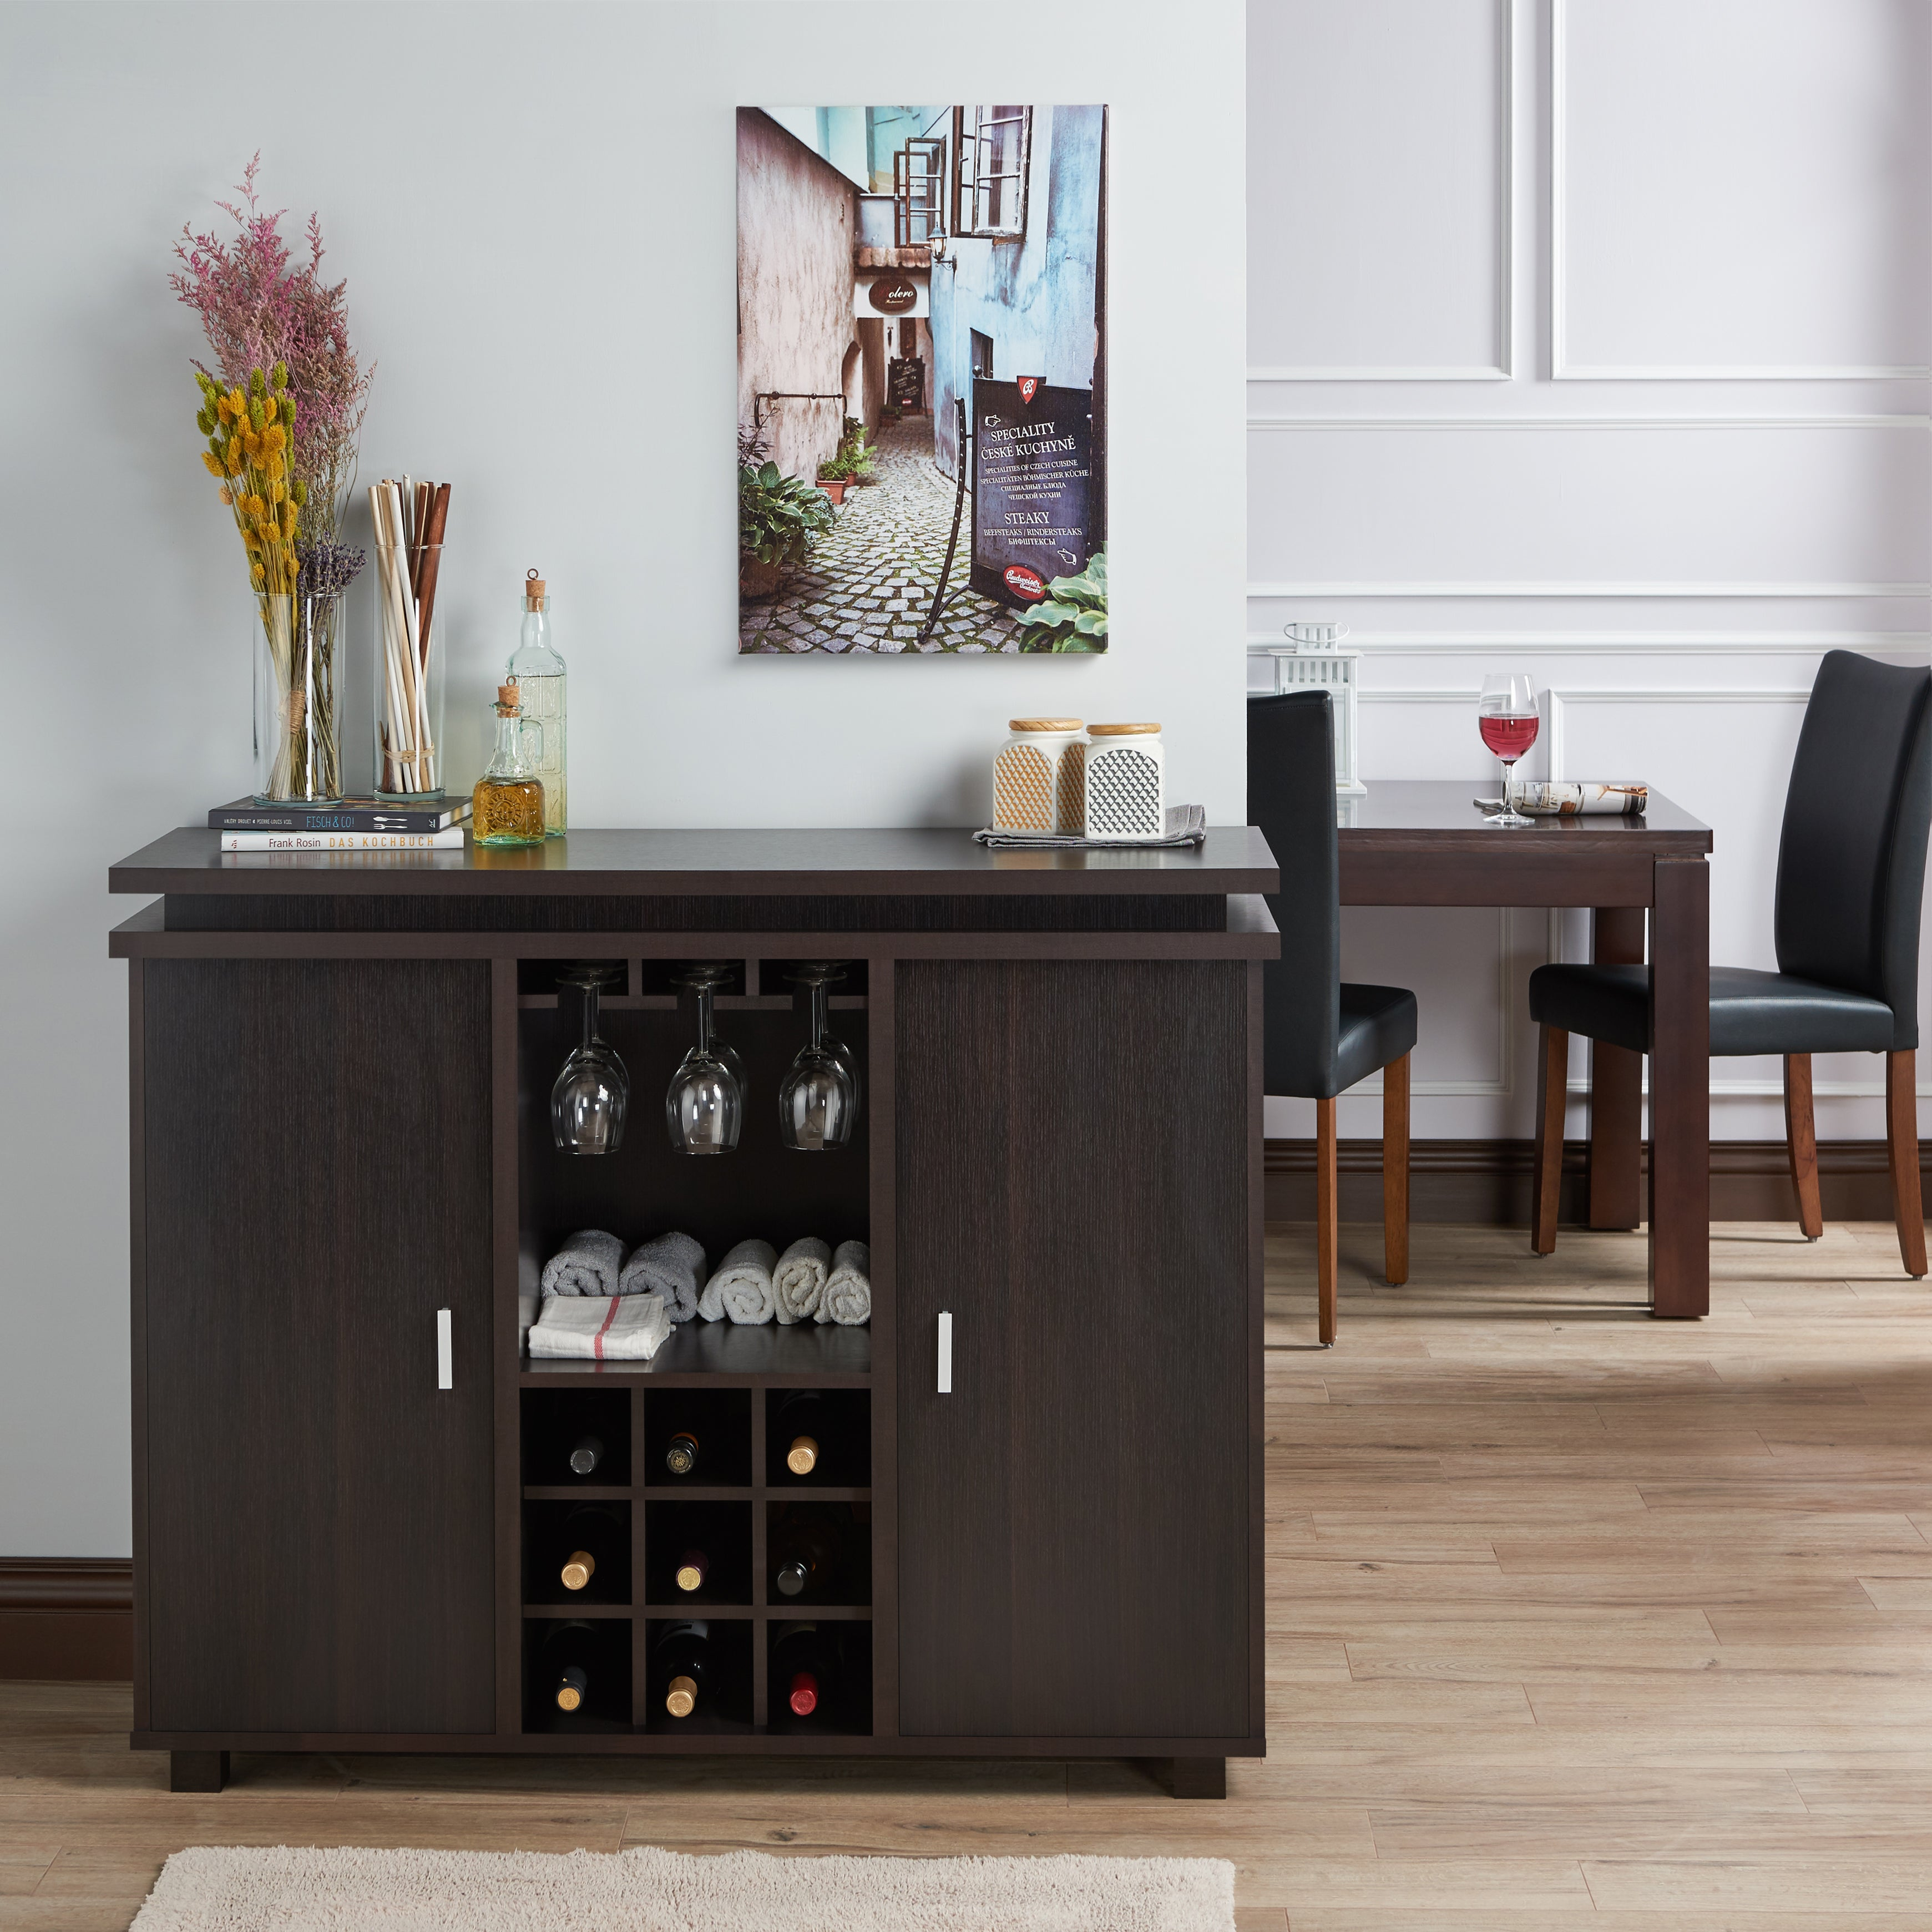 Furniture Of America Mirande Contemporary Espresso Dining Buffet With Wine Storage With Contemporary Espresso 2 Cabinet Dining Buffets (View 11 of 30)